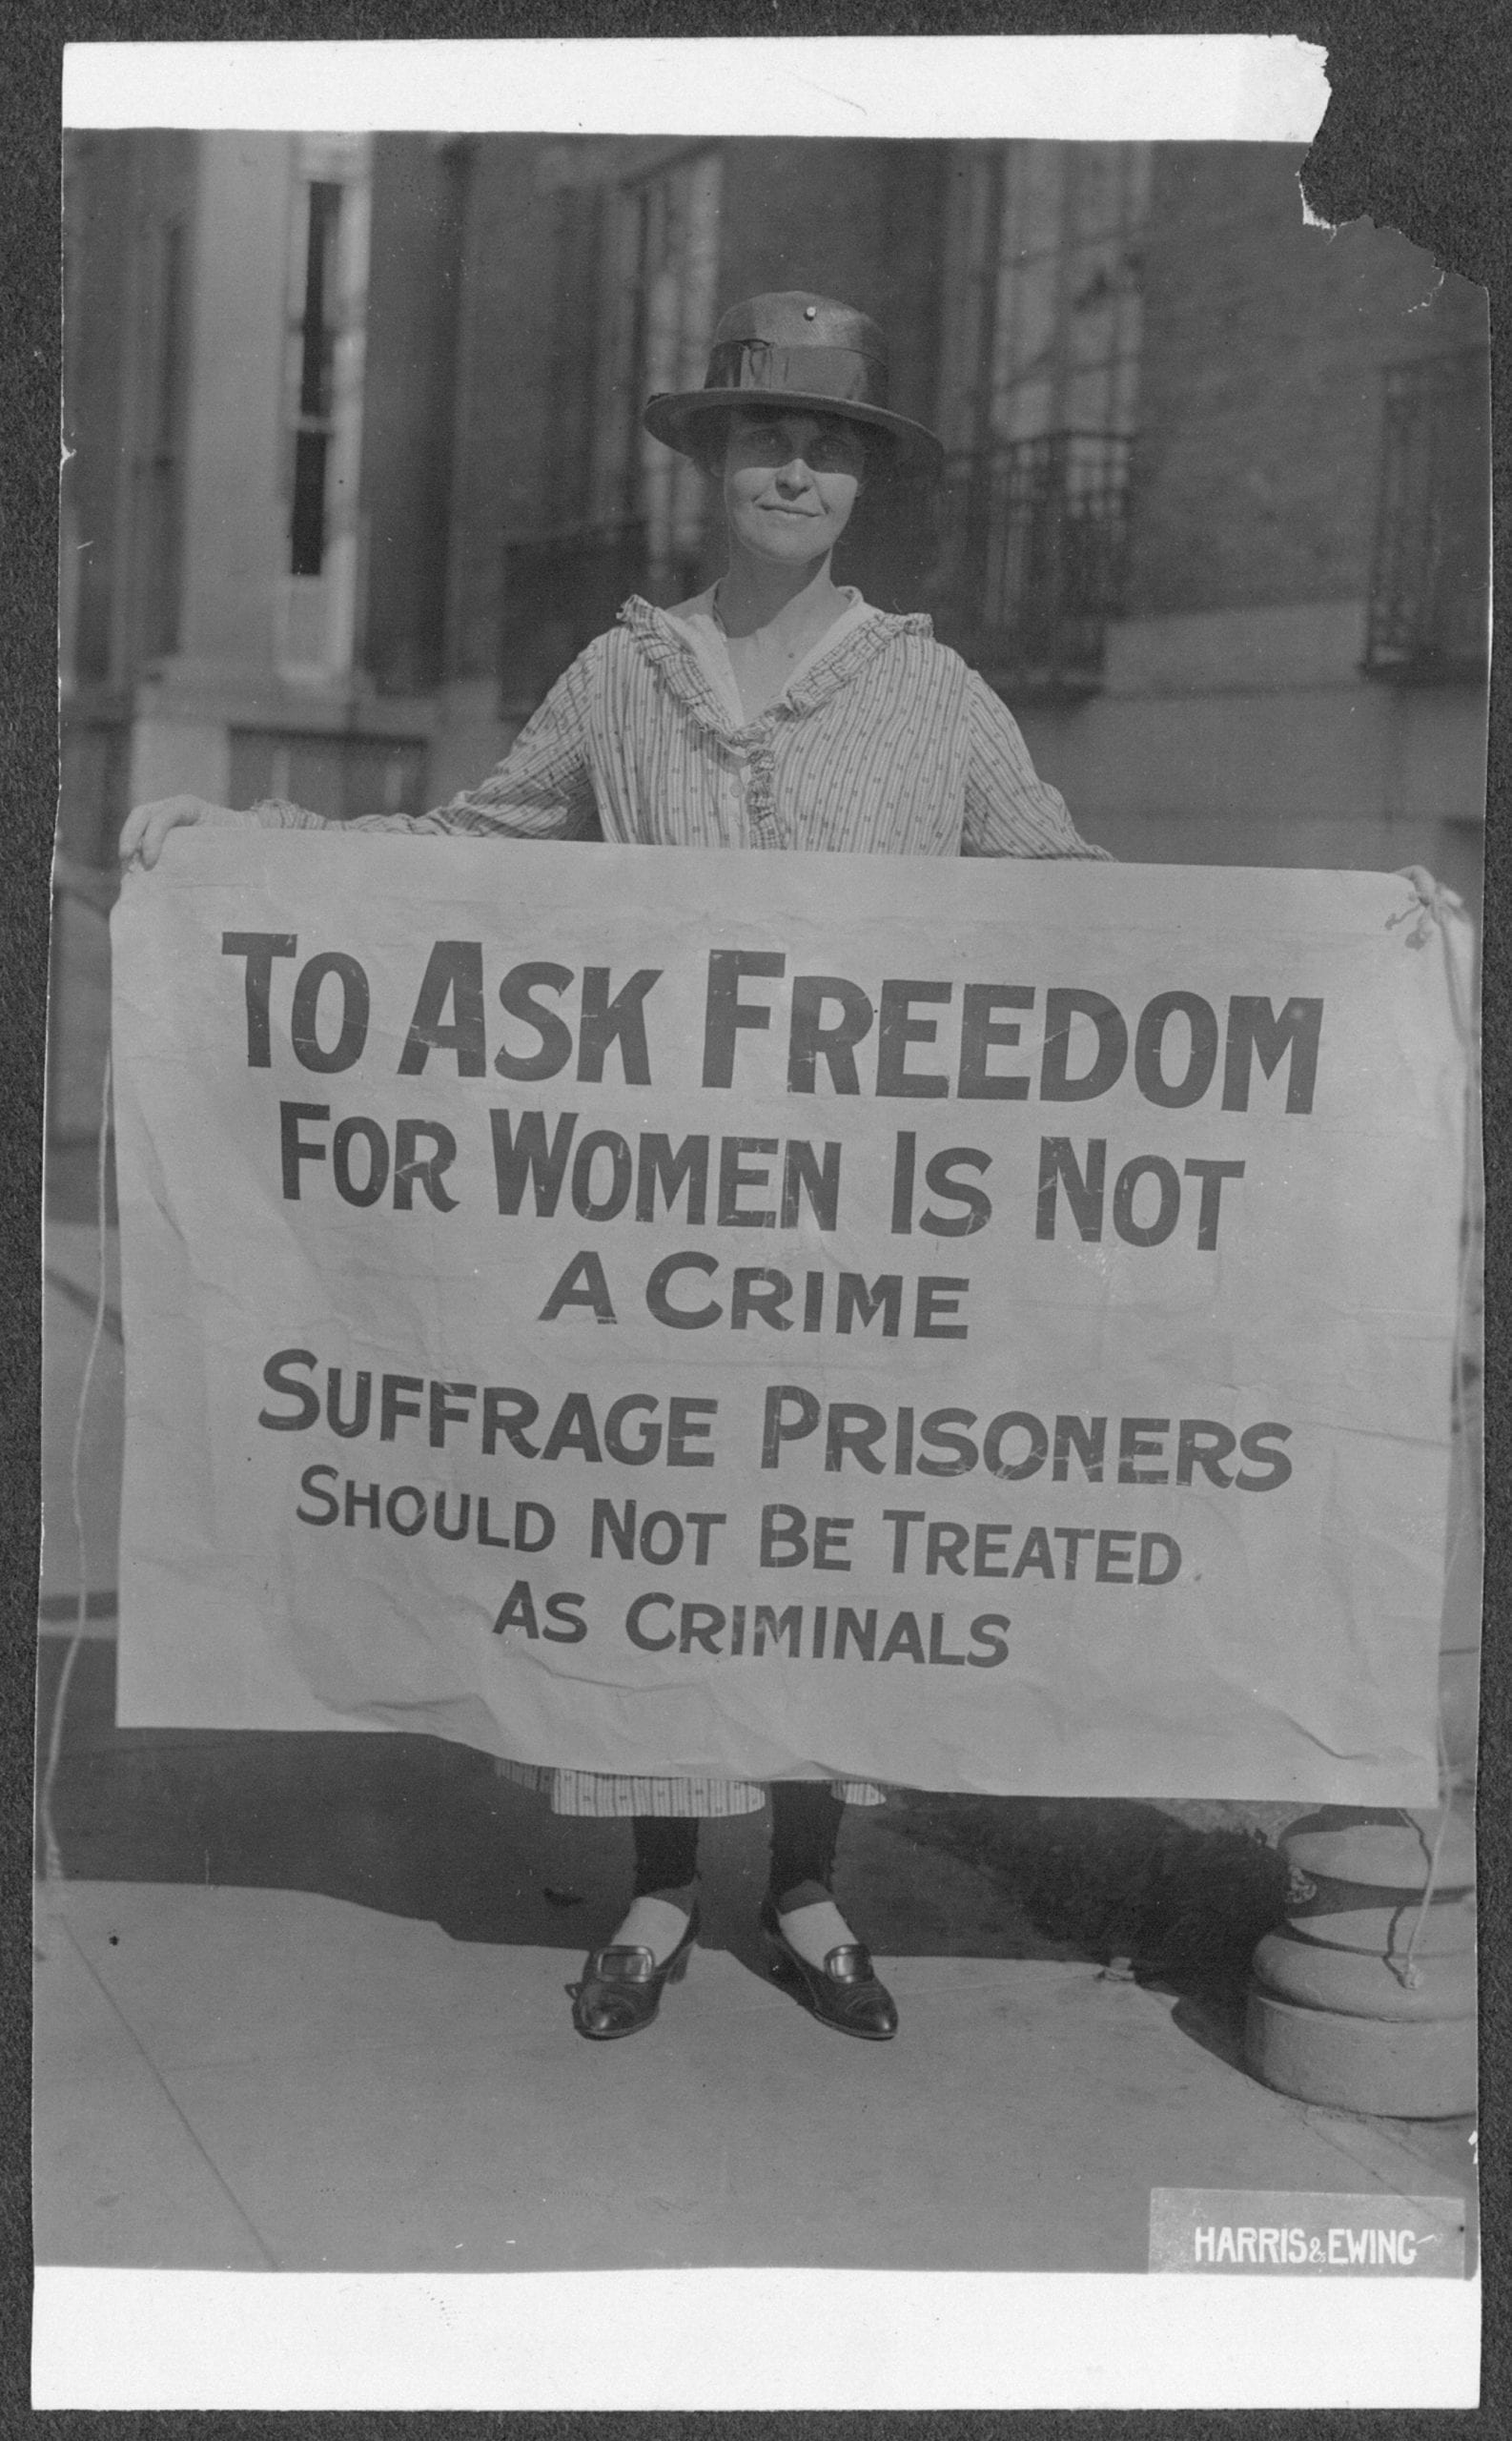 Mary Winsor (Penn.) '17 [holding Suffrage Prisoners banner]